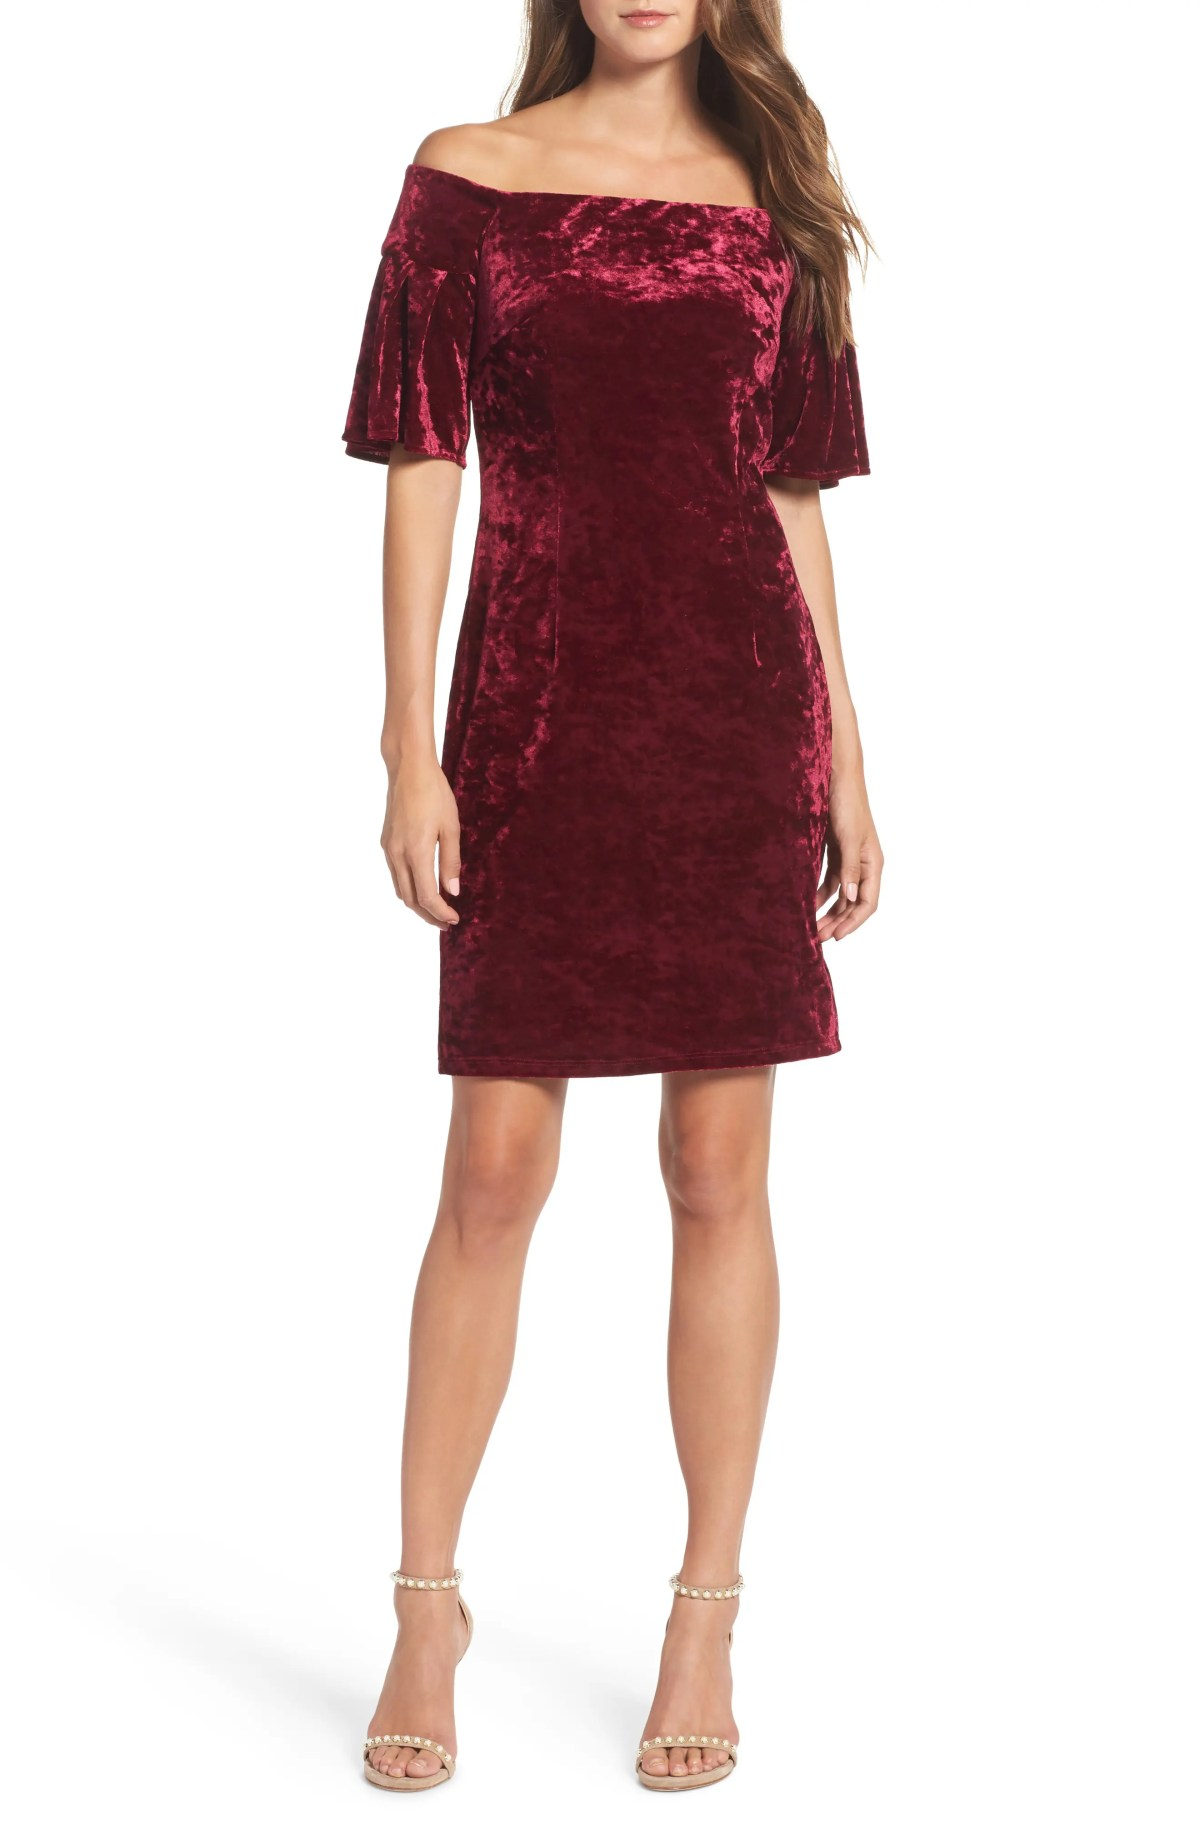 ELIZA J Off the Shoulder Velvet Cocktail Dress, Main, color, WINE